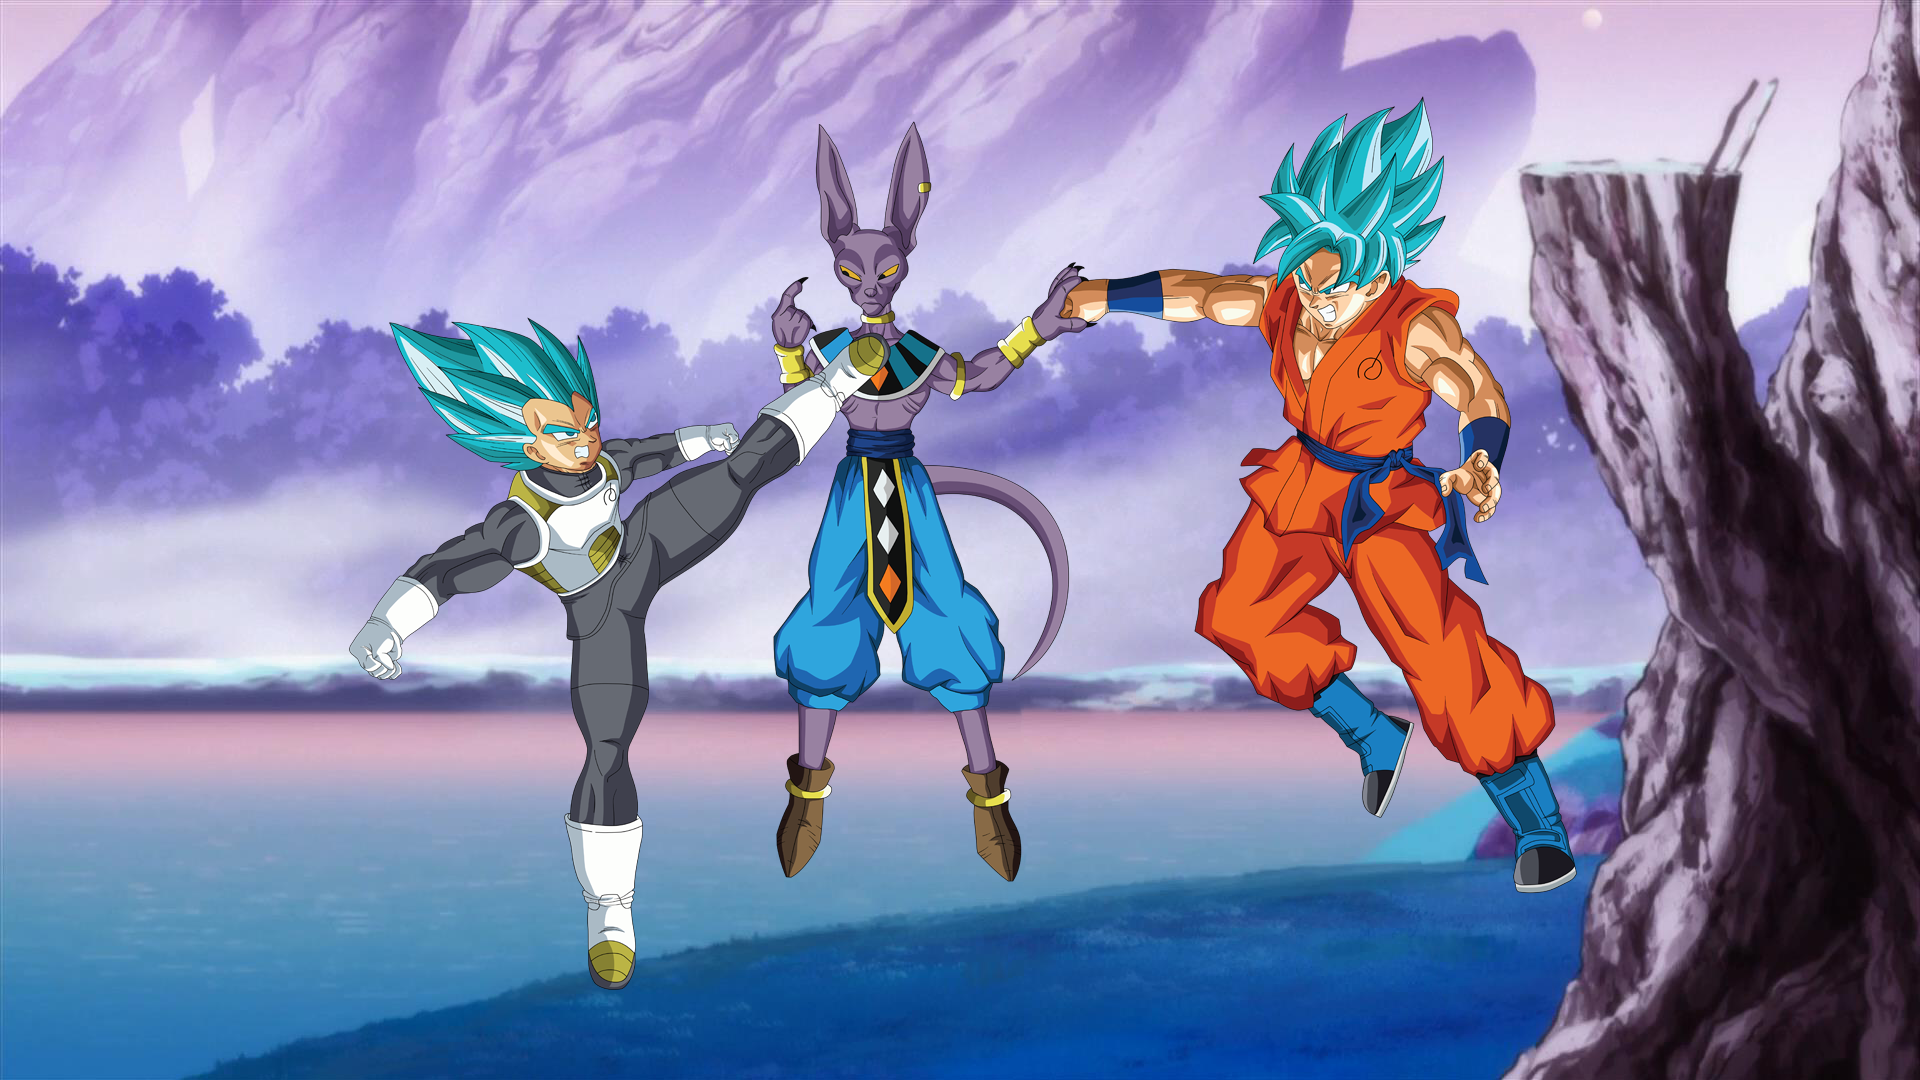 Good Wallpaper Lord Dragon - vegeta_and_goku_ssgss_vs_lord_beerus_wallpaper_by_eymsmiley-d98j92g  Graphic_24513.png